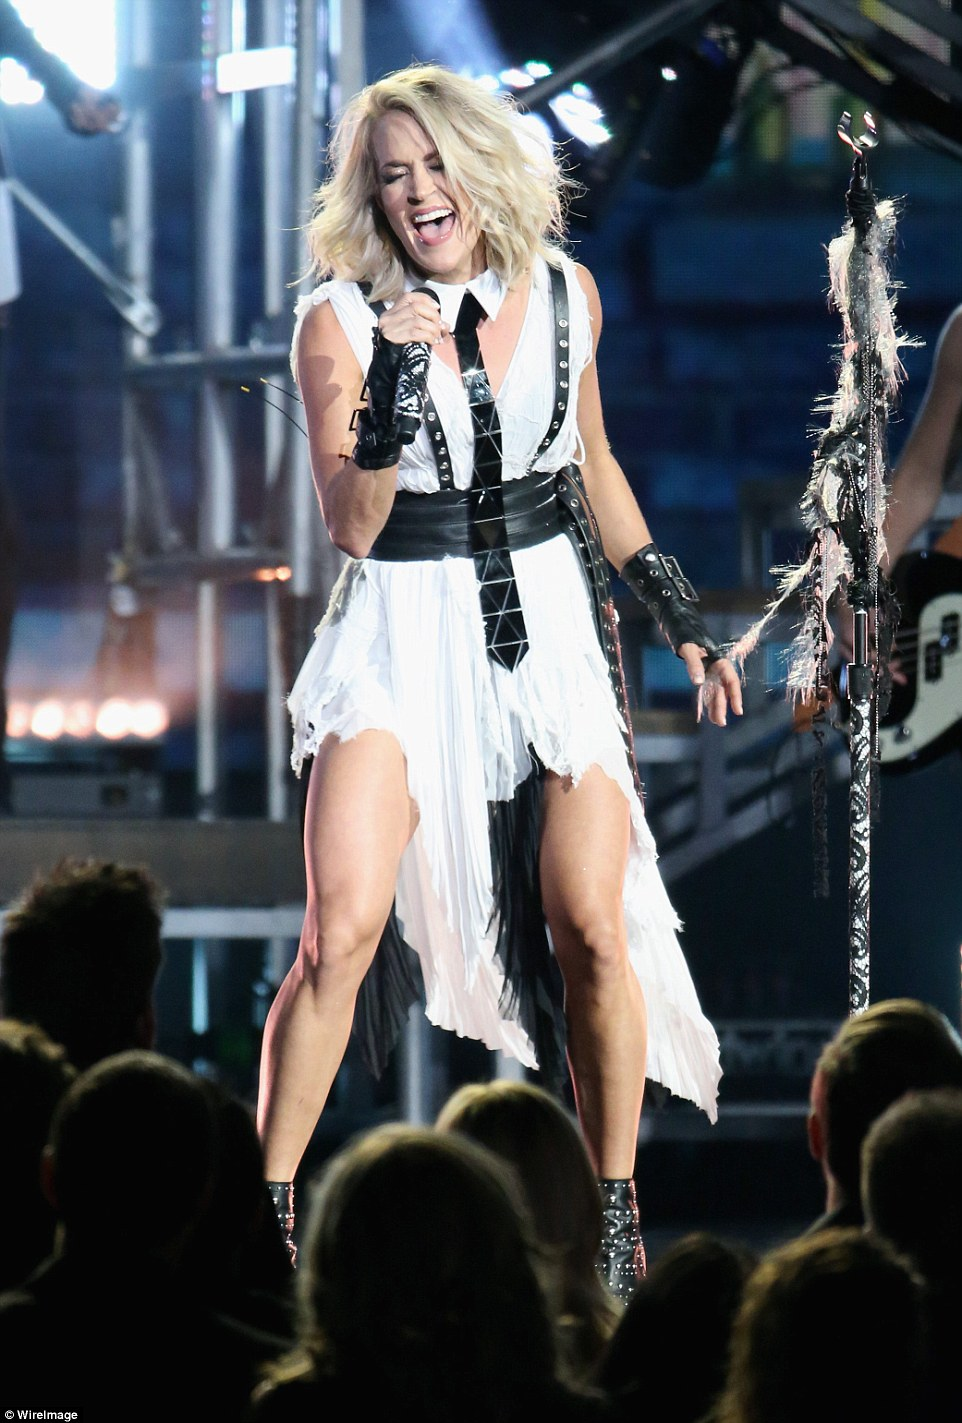 Racy: The outfit featured a black leather belt with matching suspenders, tie, large bracelets and studded leather boots